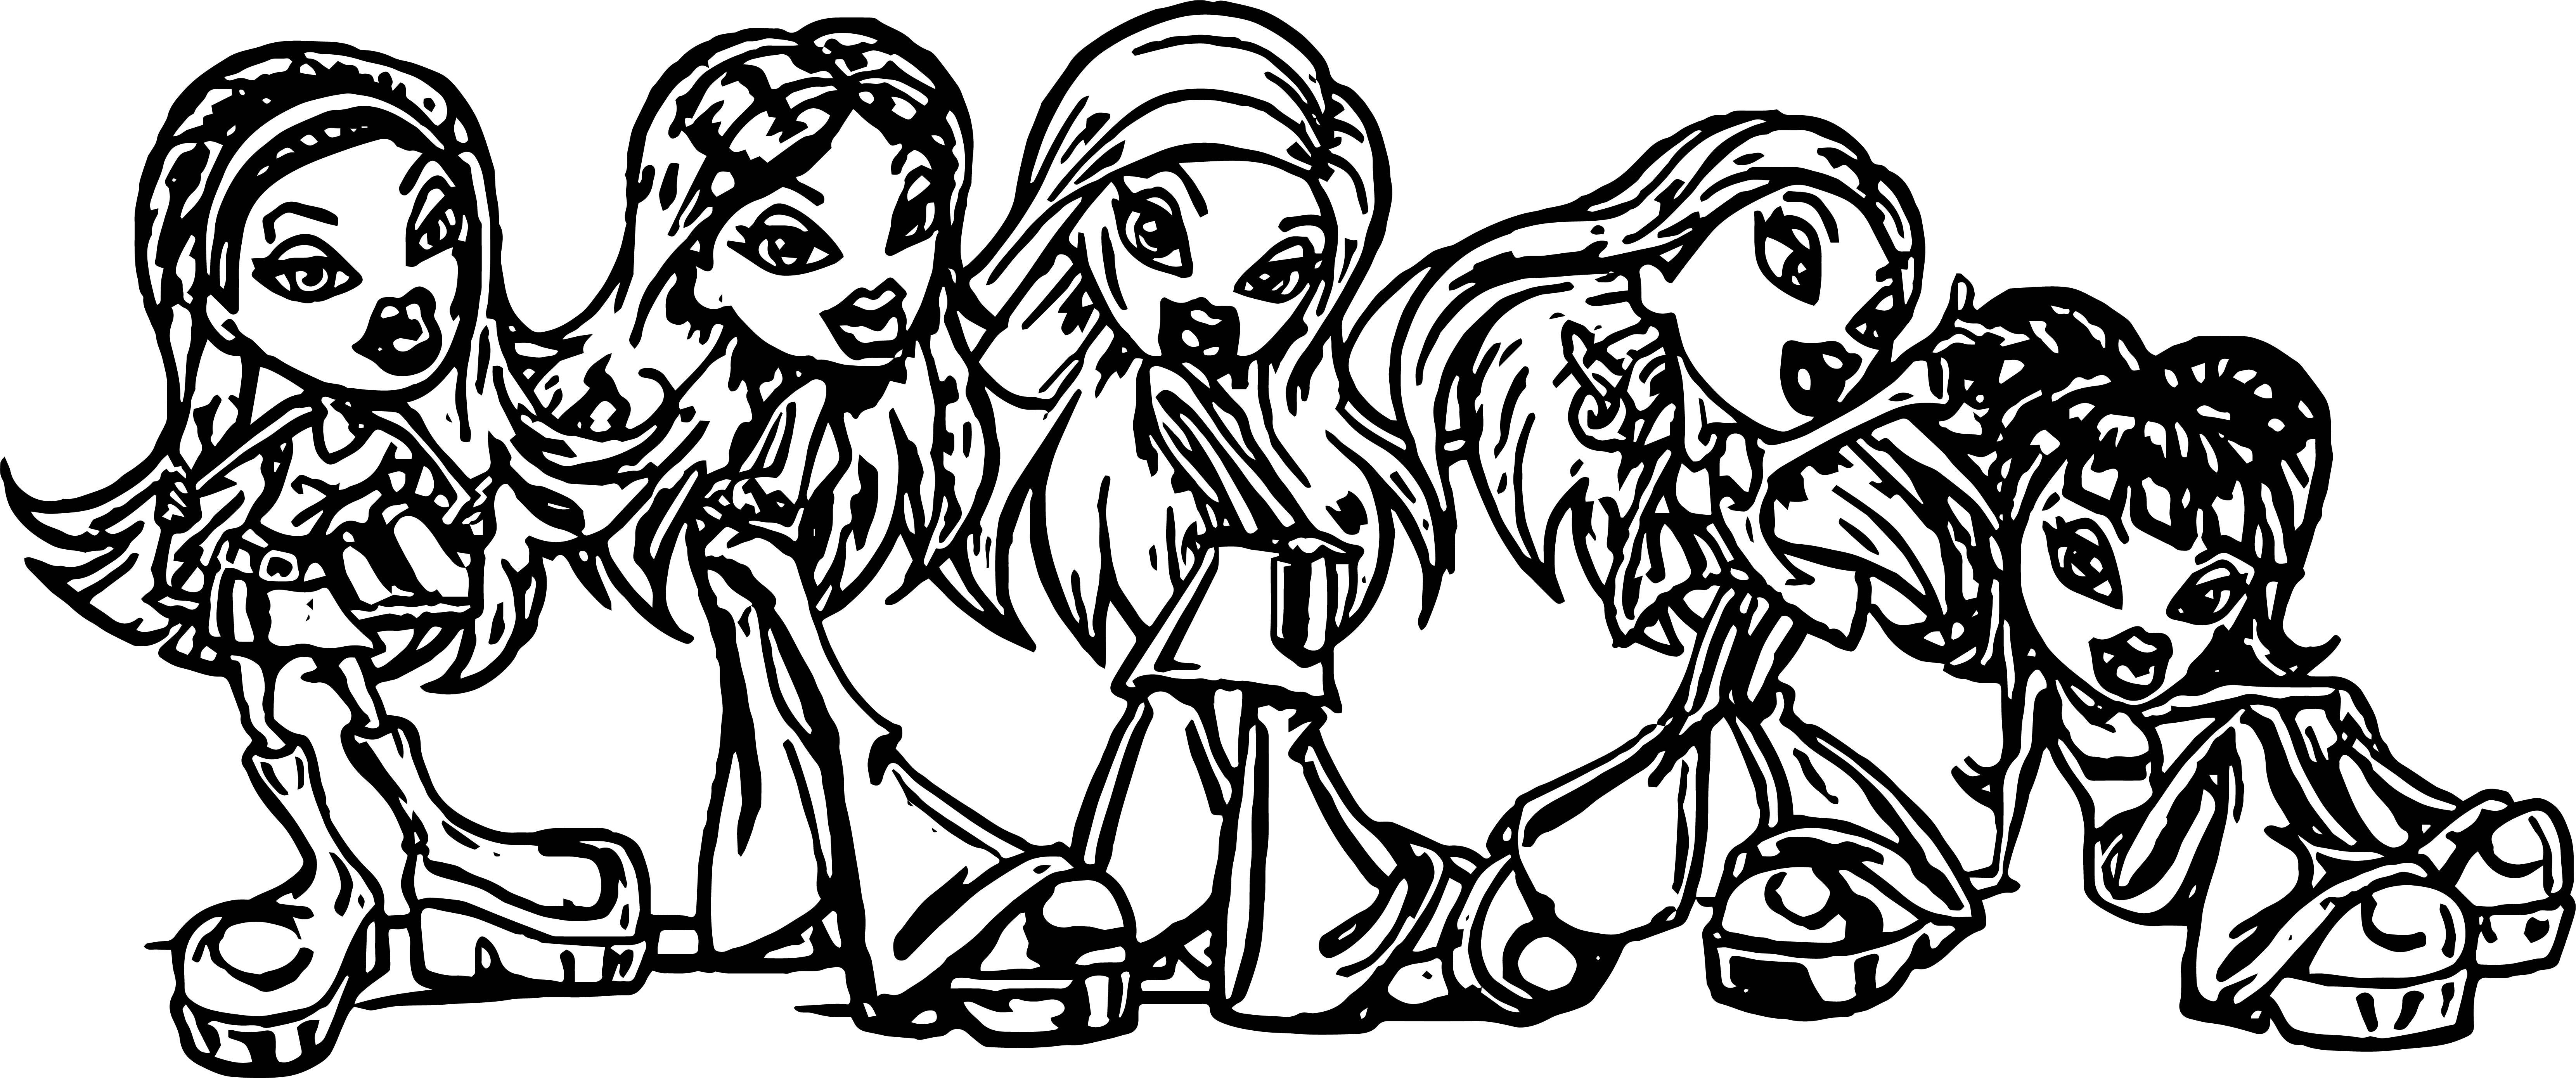 Bratz Girl Friends Coloring Page